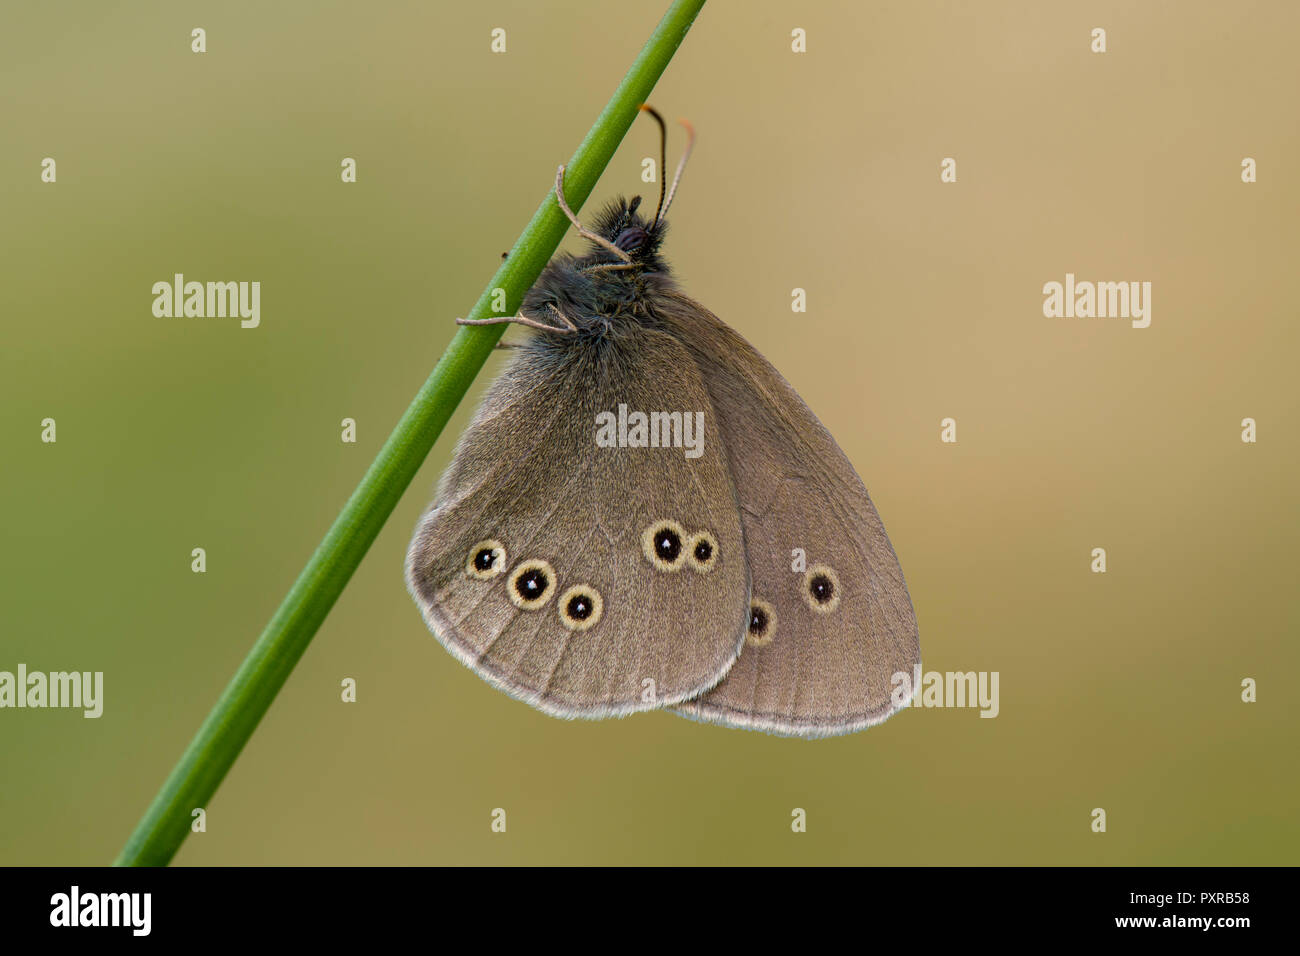 Ringlet on a blade of grass - Stock Image